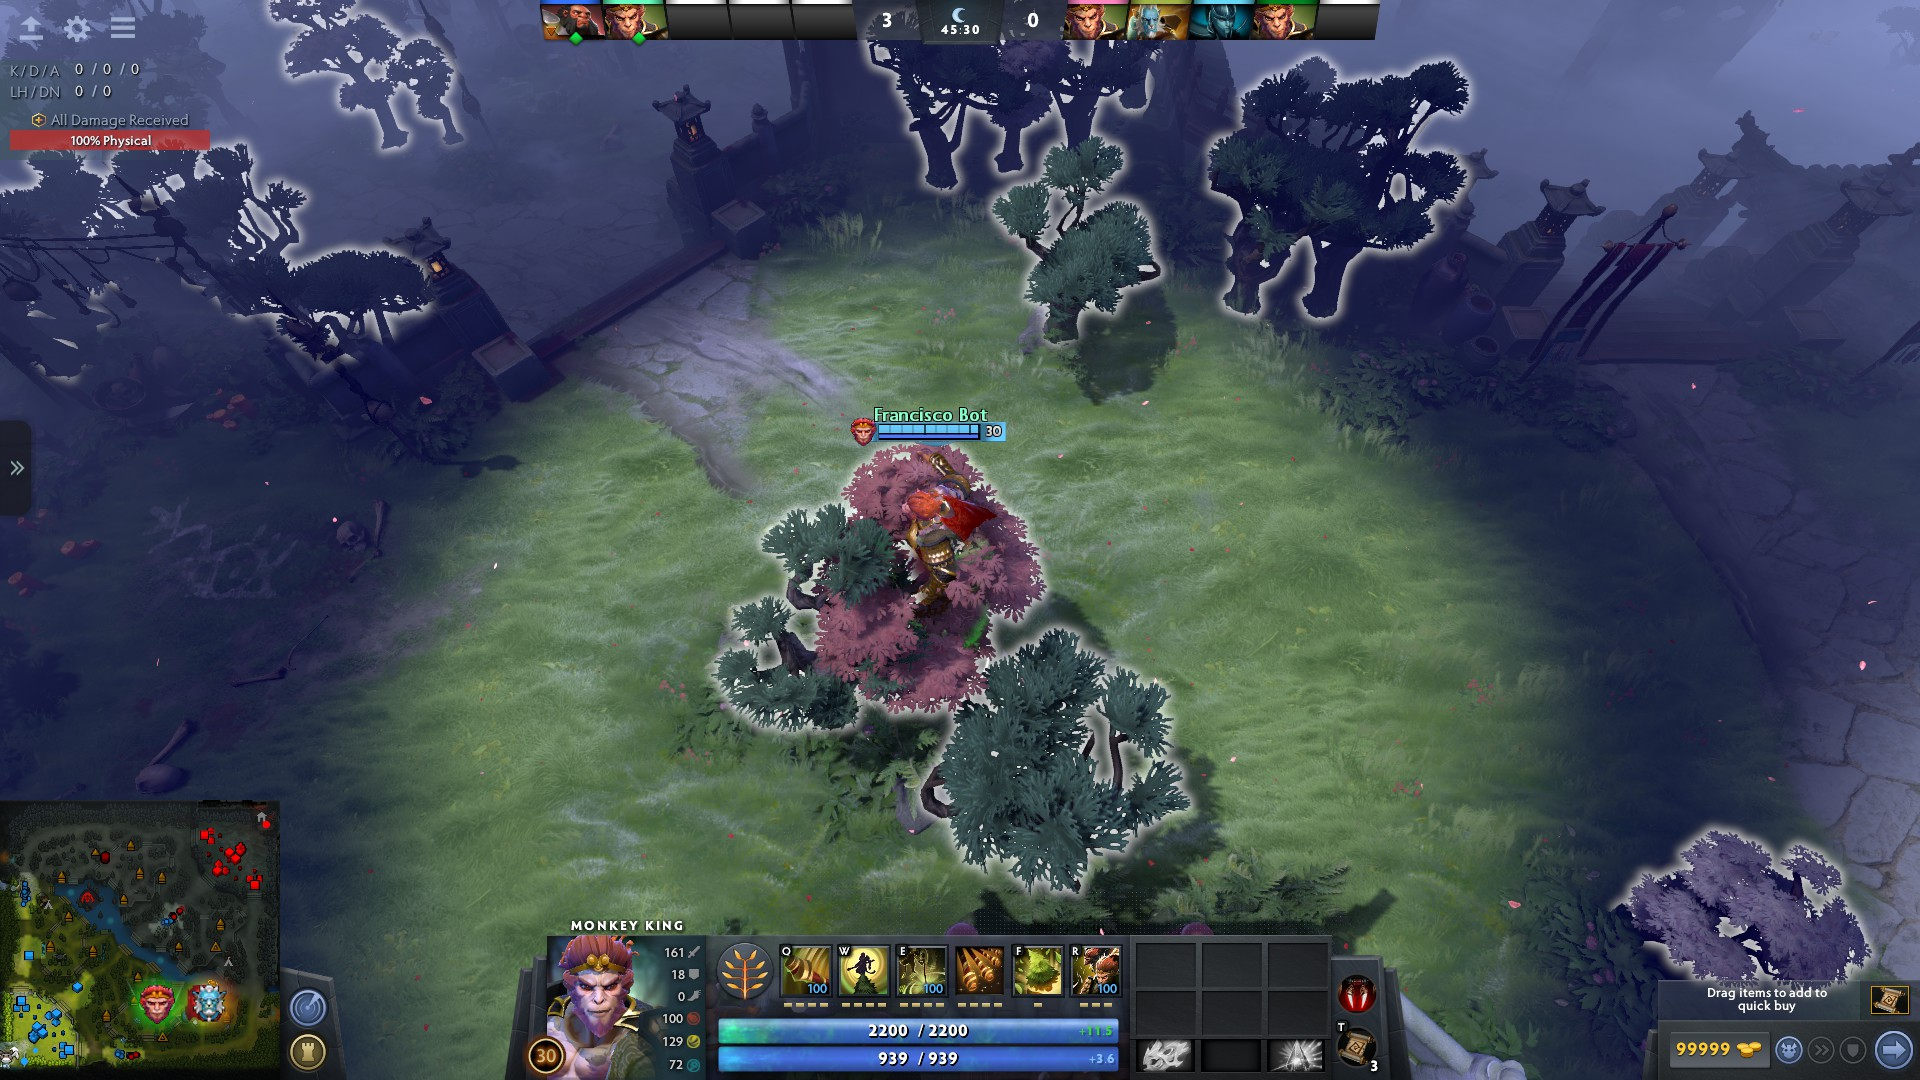 Reddit Dota 2 On Twitter Monkey King S Tree Dance Vision Aoe Is